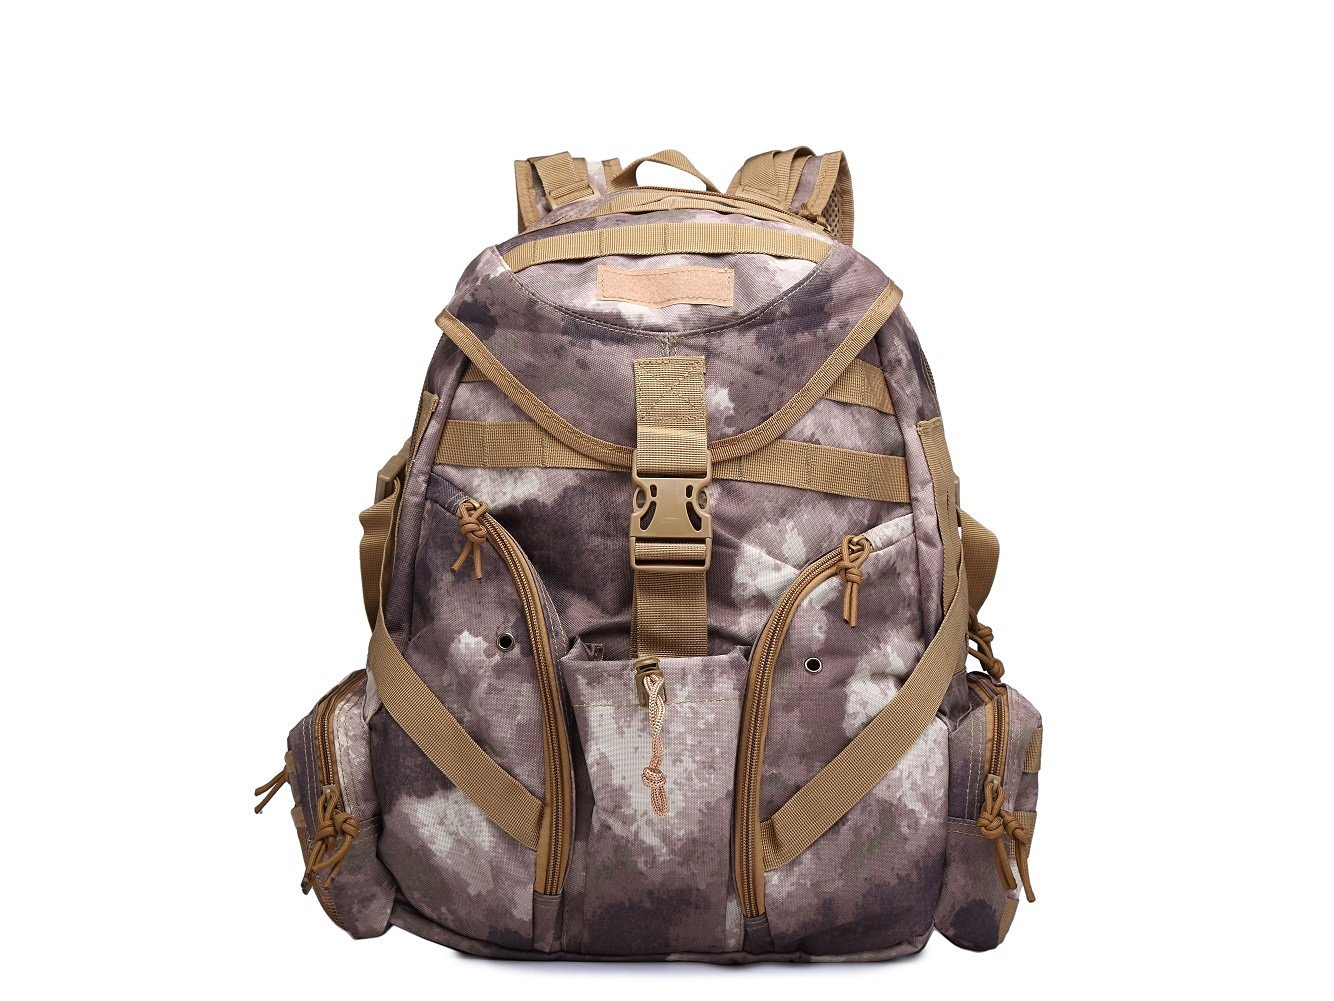 Cheap Pink Rucksacks For Travelling, find